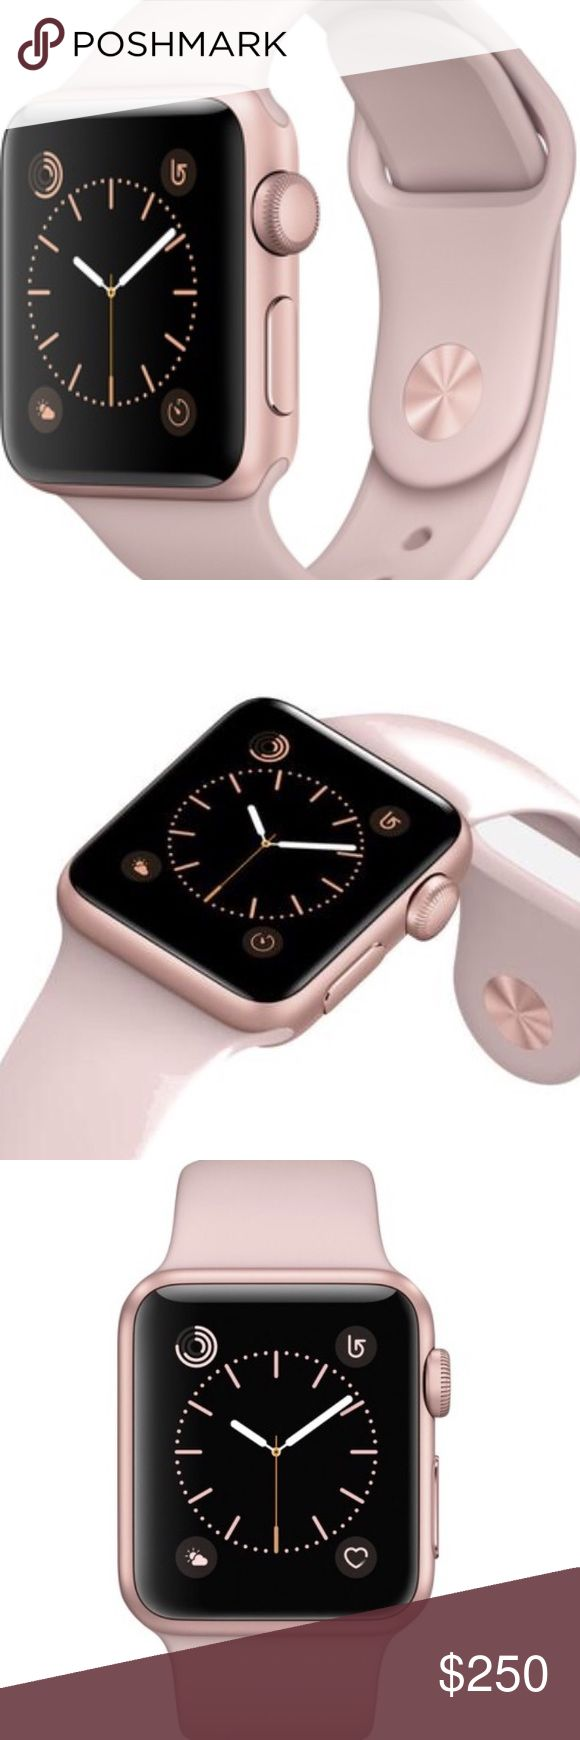 New Apple Watch Gen.2 Series 1 Rose Gold 38mm Brand new Apple Watch Rose Gold 38mm Gen.2 Series 1 never opened sealed package. Comes with pick sand sport band. Get a brand new Apple watch i ship fast and secure trusted seller with more than 300 complete transactions here in Posnhmark. Also free tempered glass so you can keep your watch screen new. I also offer bands for these watches to update look and elegance. Thank you and please no trades Apple Accessories Watches